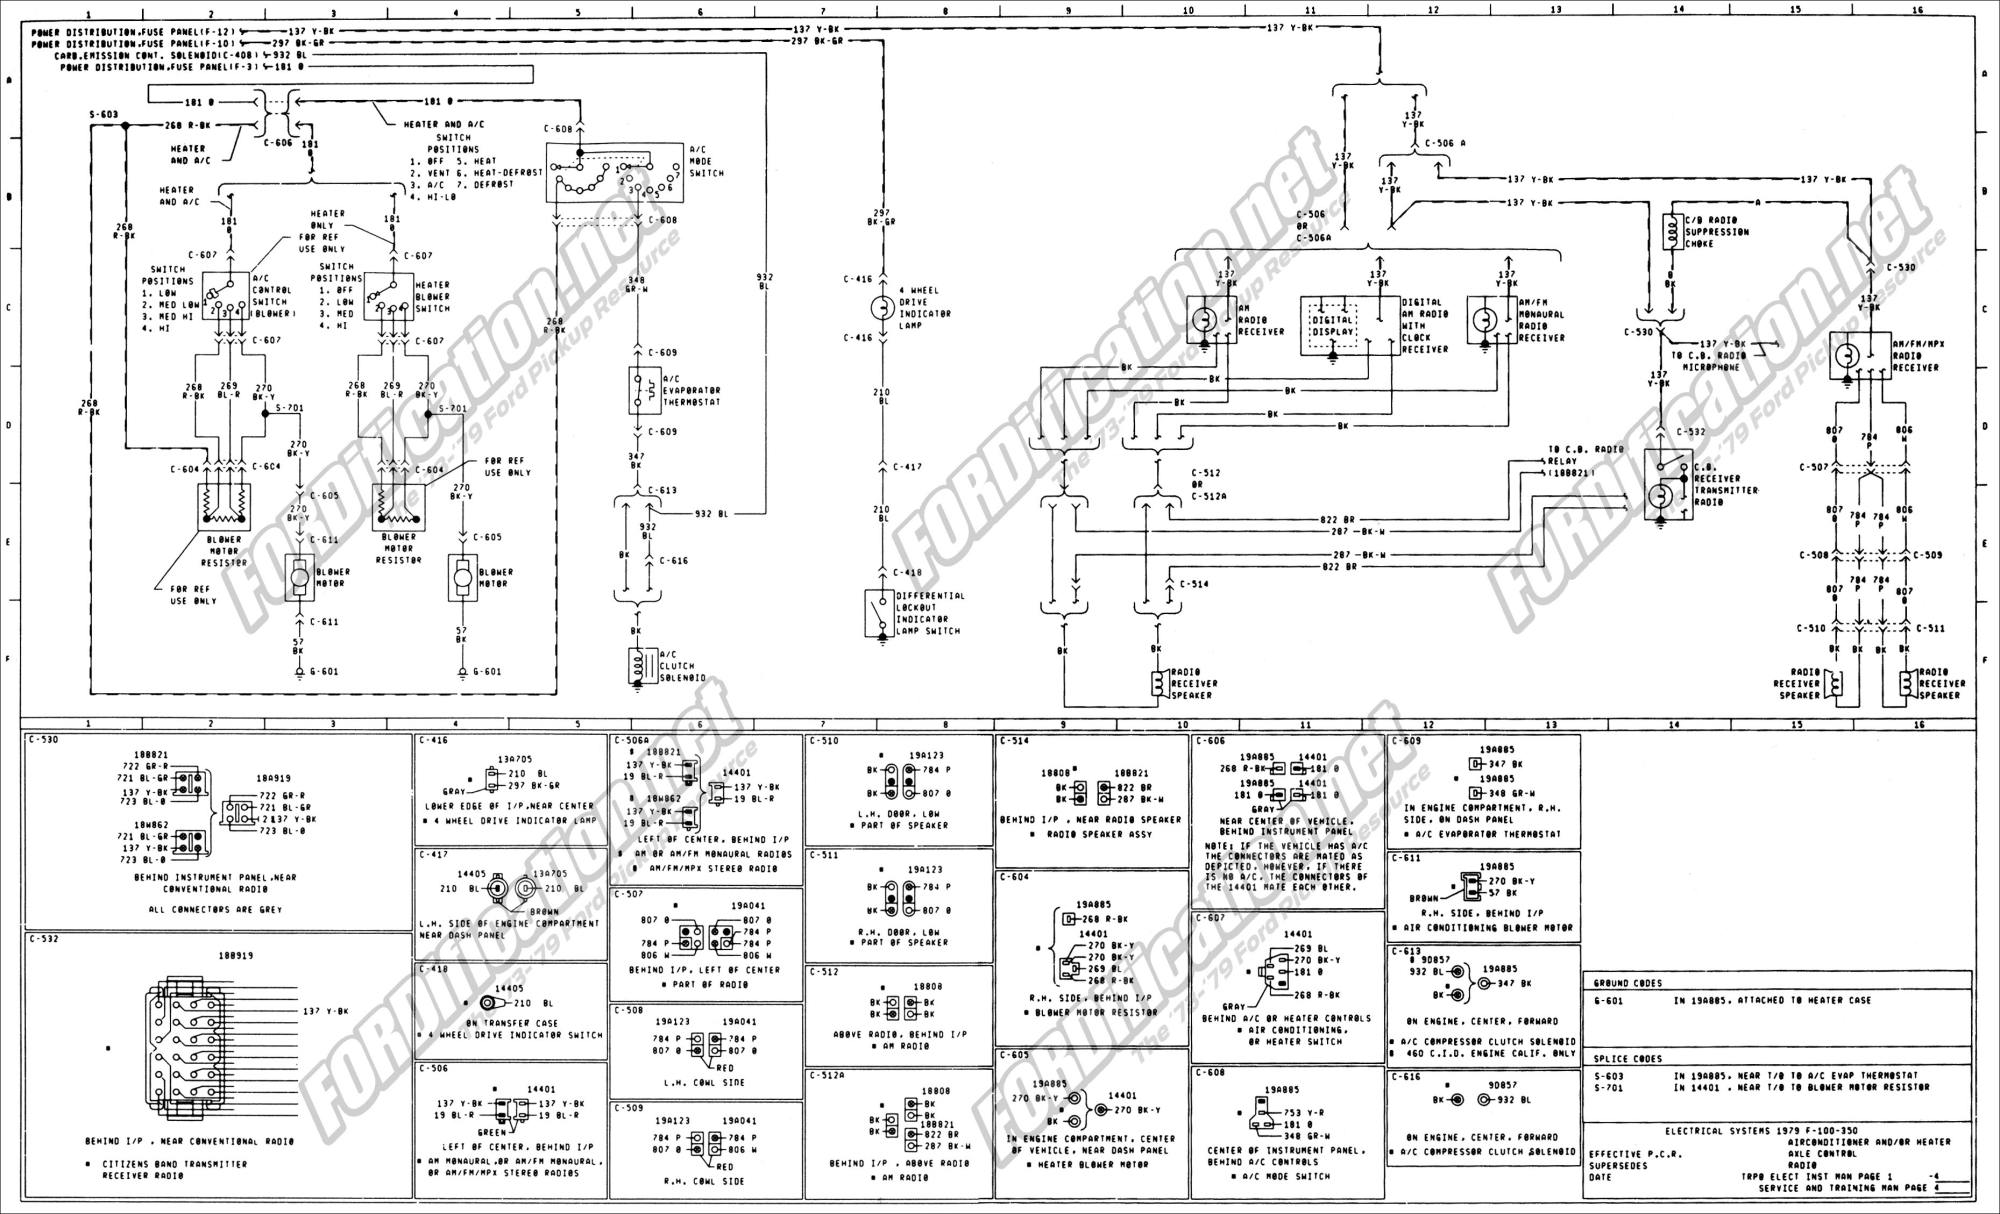 hight resolution of 79 corvette fuse box diagram free download wiring wiring library 1988 corvette fuse box diagram 79 corvette fuse box diagram free download wiring